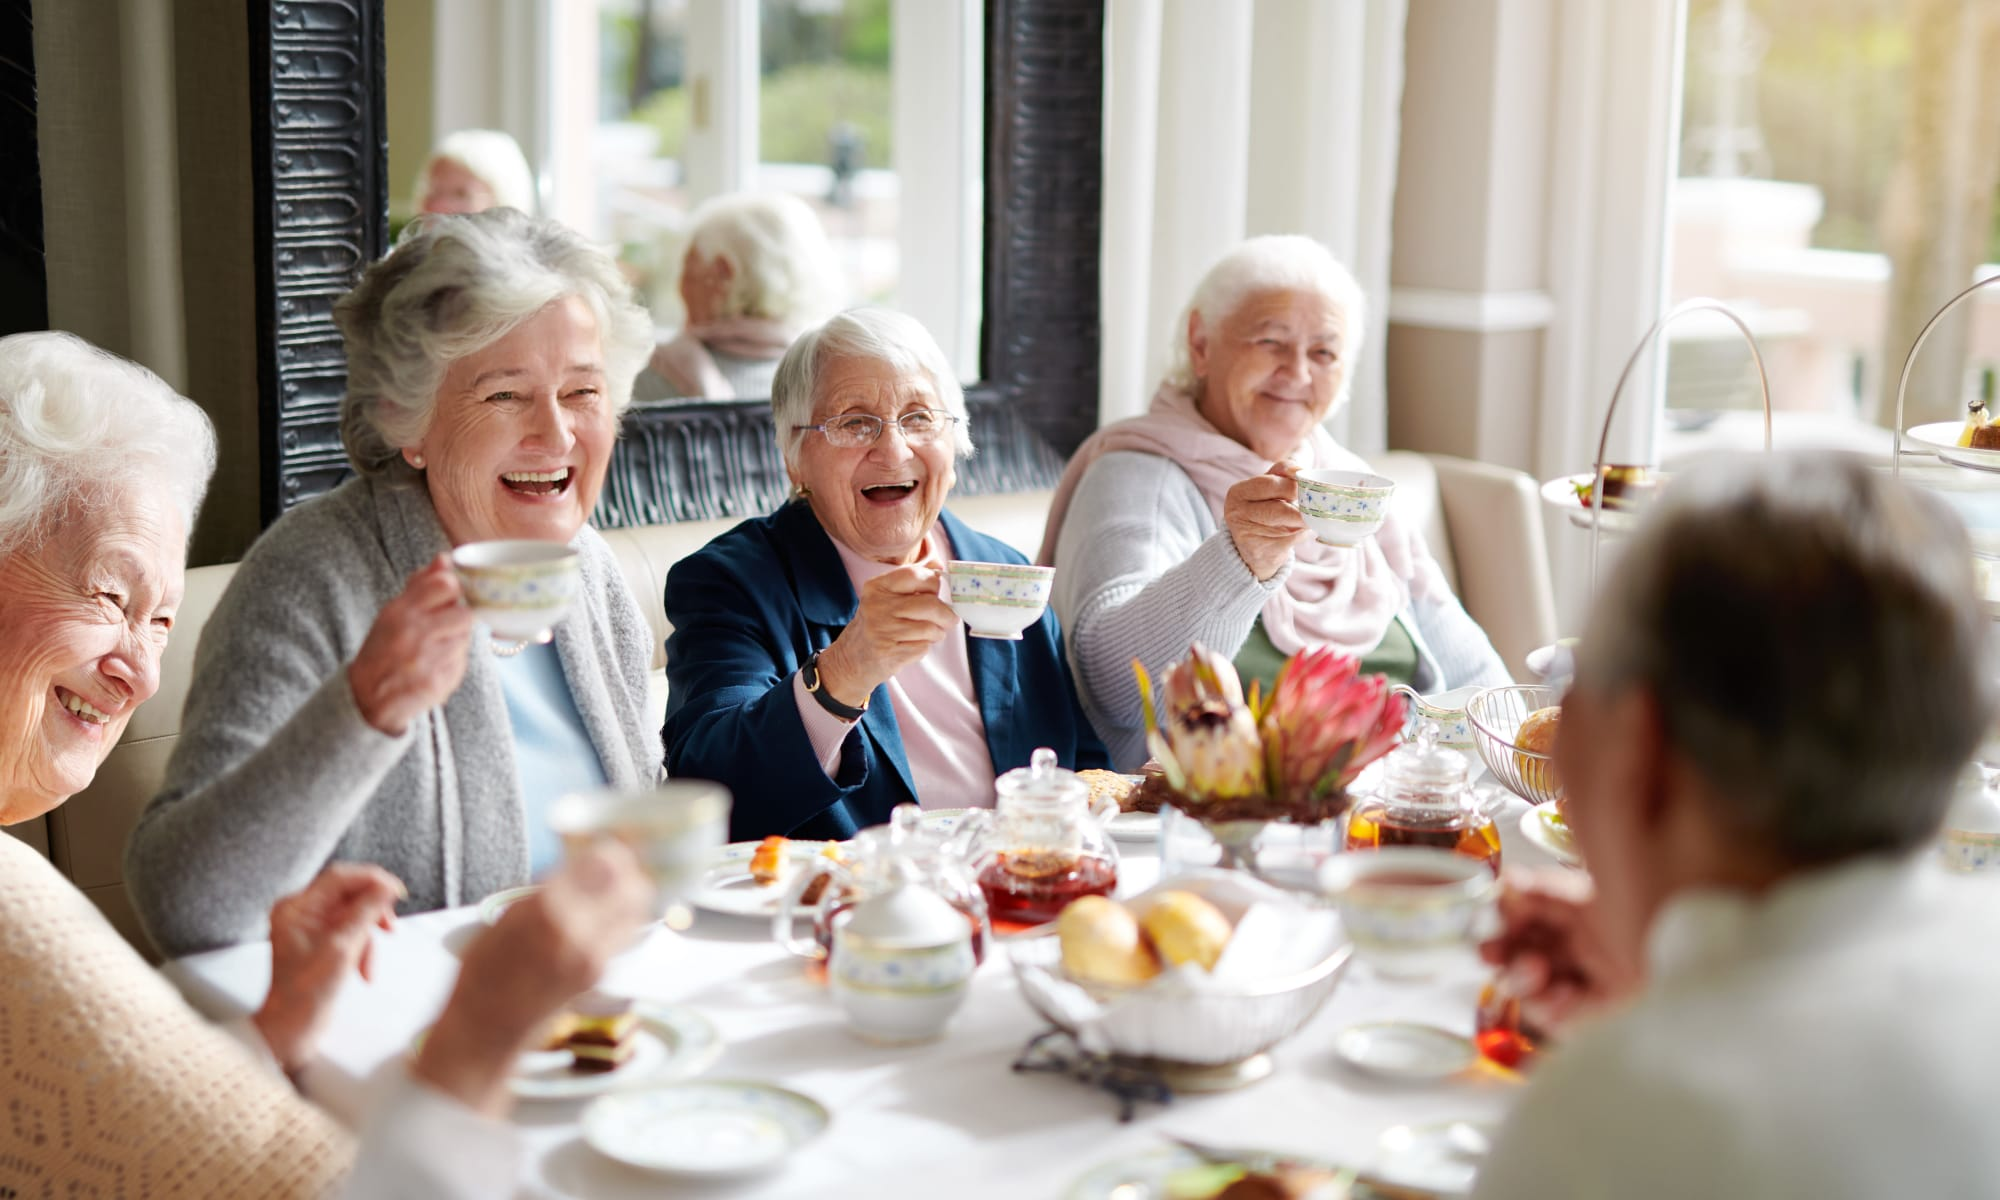 Residents having tea together at Harmony Senior Services in Charleston, South Carolina